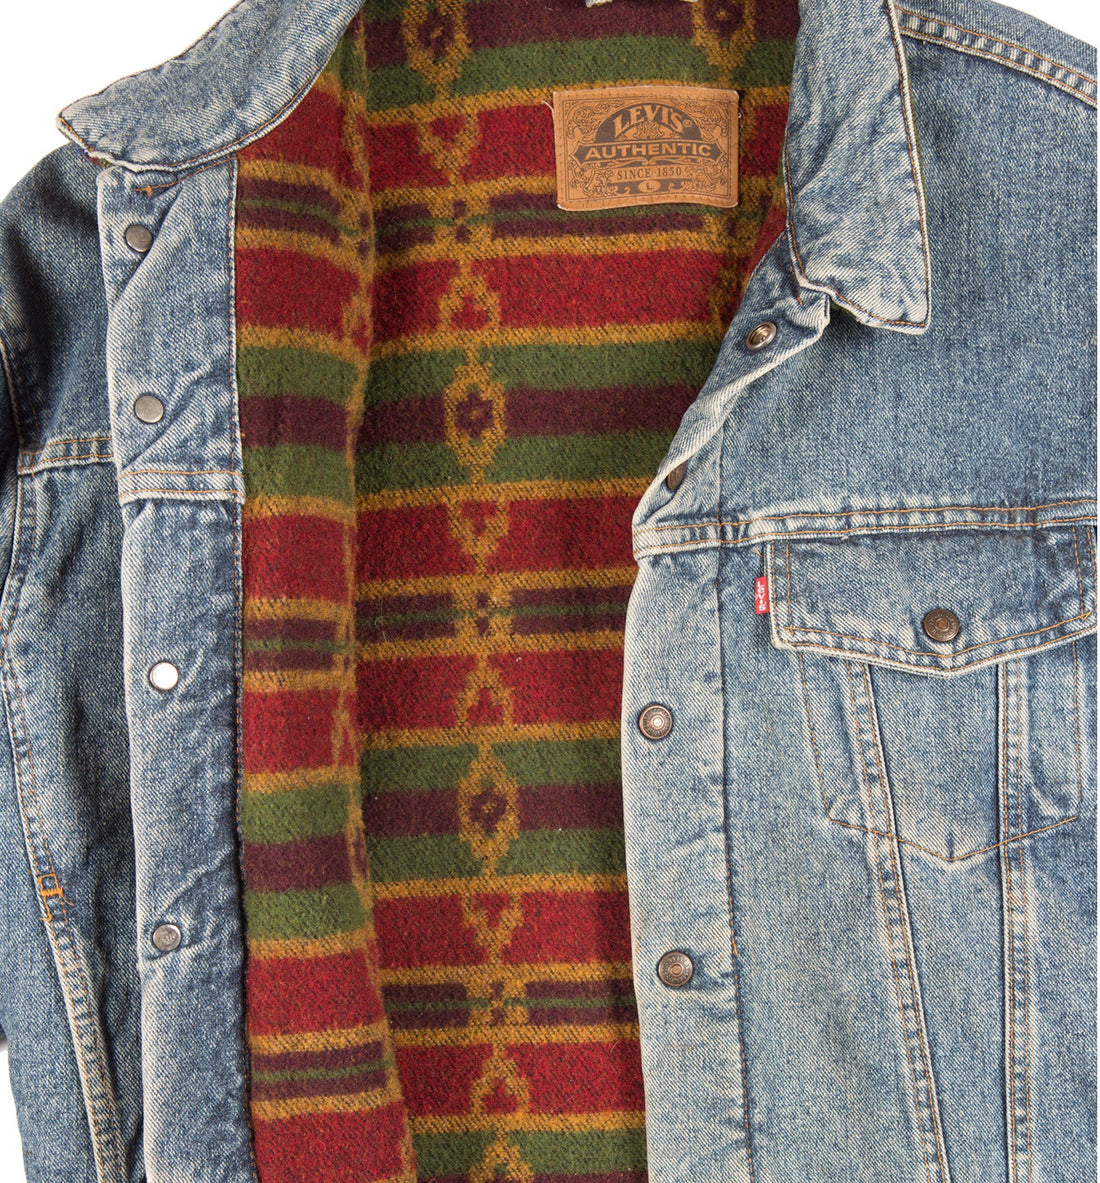 70's Levis Jean Jacket with Wool Lining - Vintage - Iron and Resin